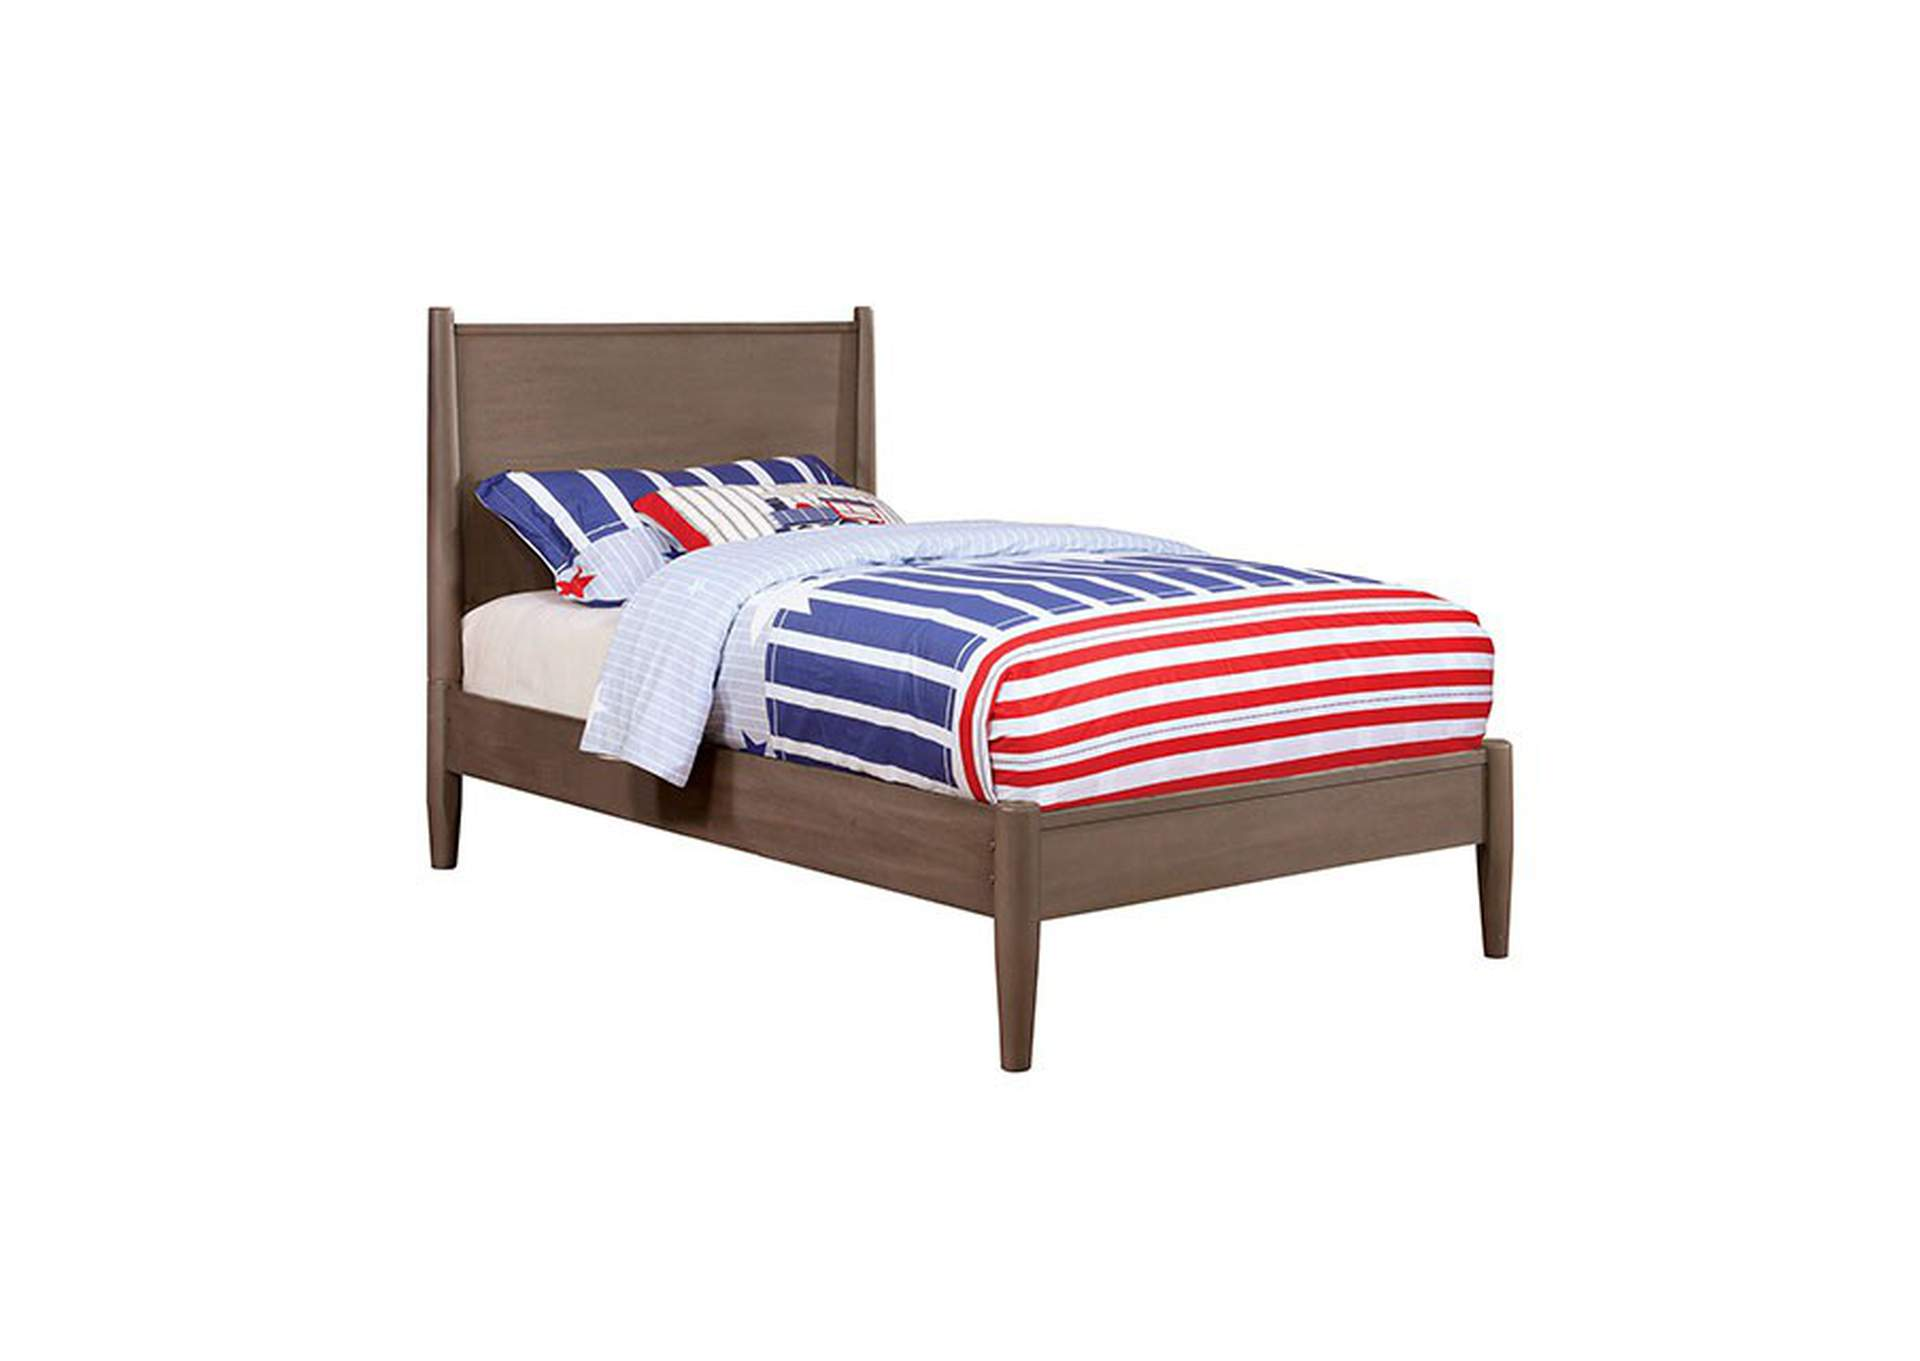 Lennart Gray Queen Platform Bed,Furniture of America